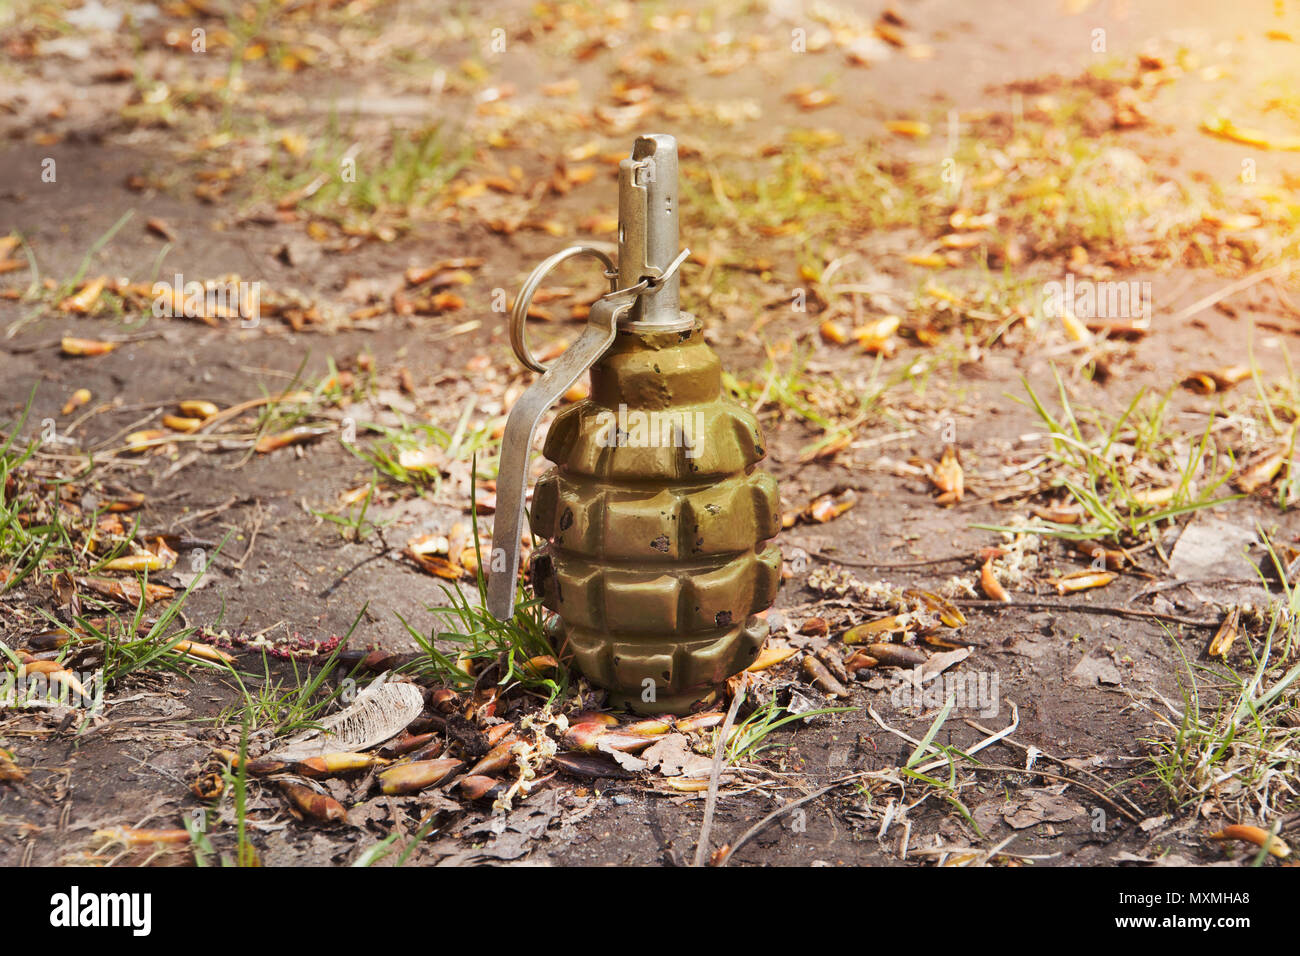 grenade lying on the ground. Hand grenade F-1. abandoned lost pomegranate greenfragmentation grenade. - Stock Image